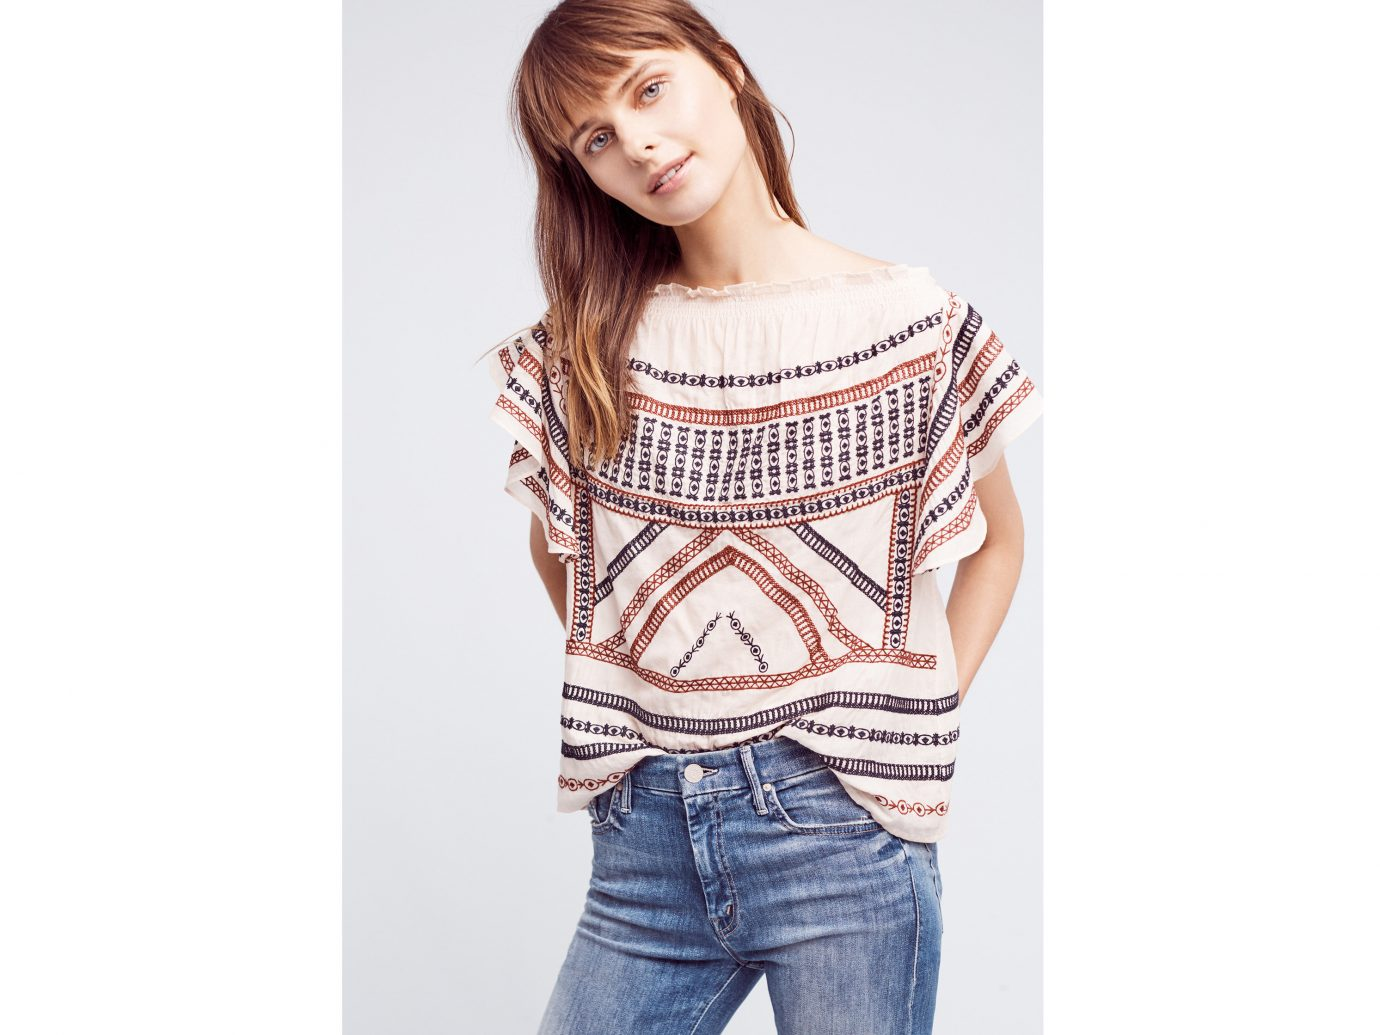 Style + Design person clothing sleeve t shirt outerwear posing sweater neck pattern photo shoot denim trouser beautiful